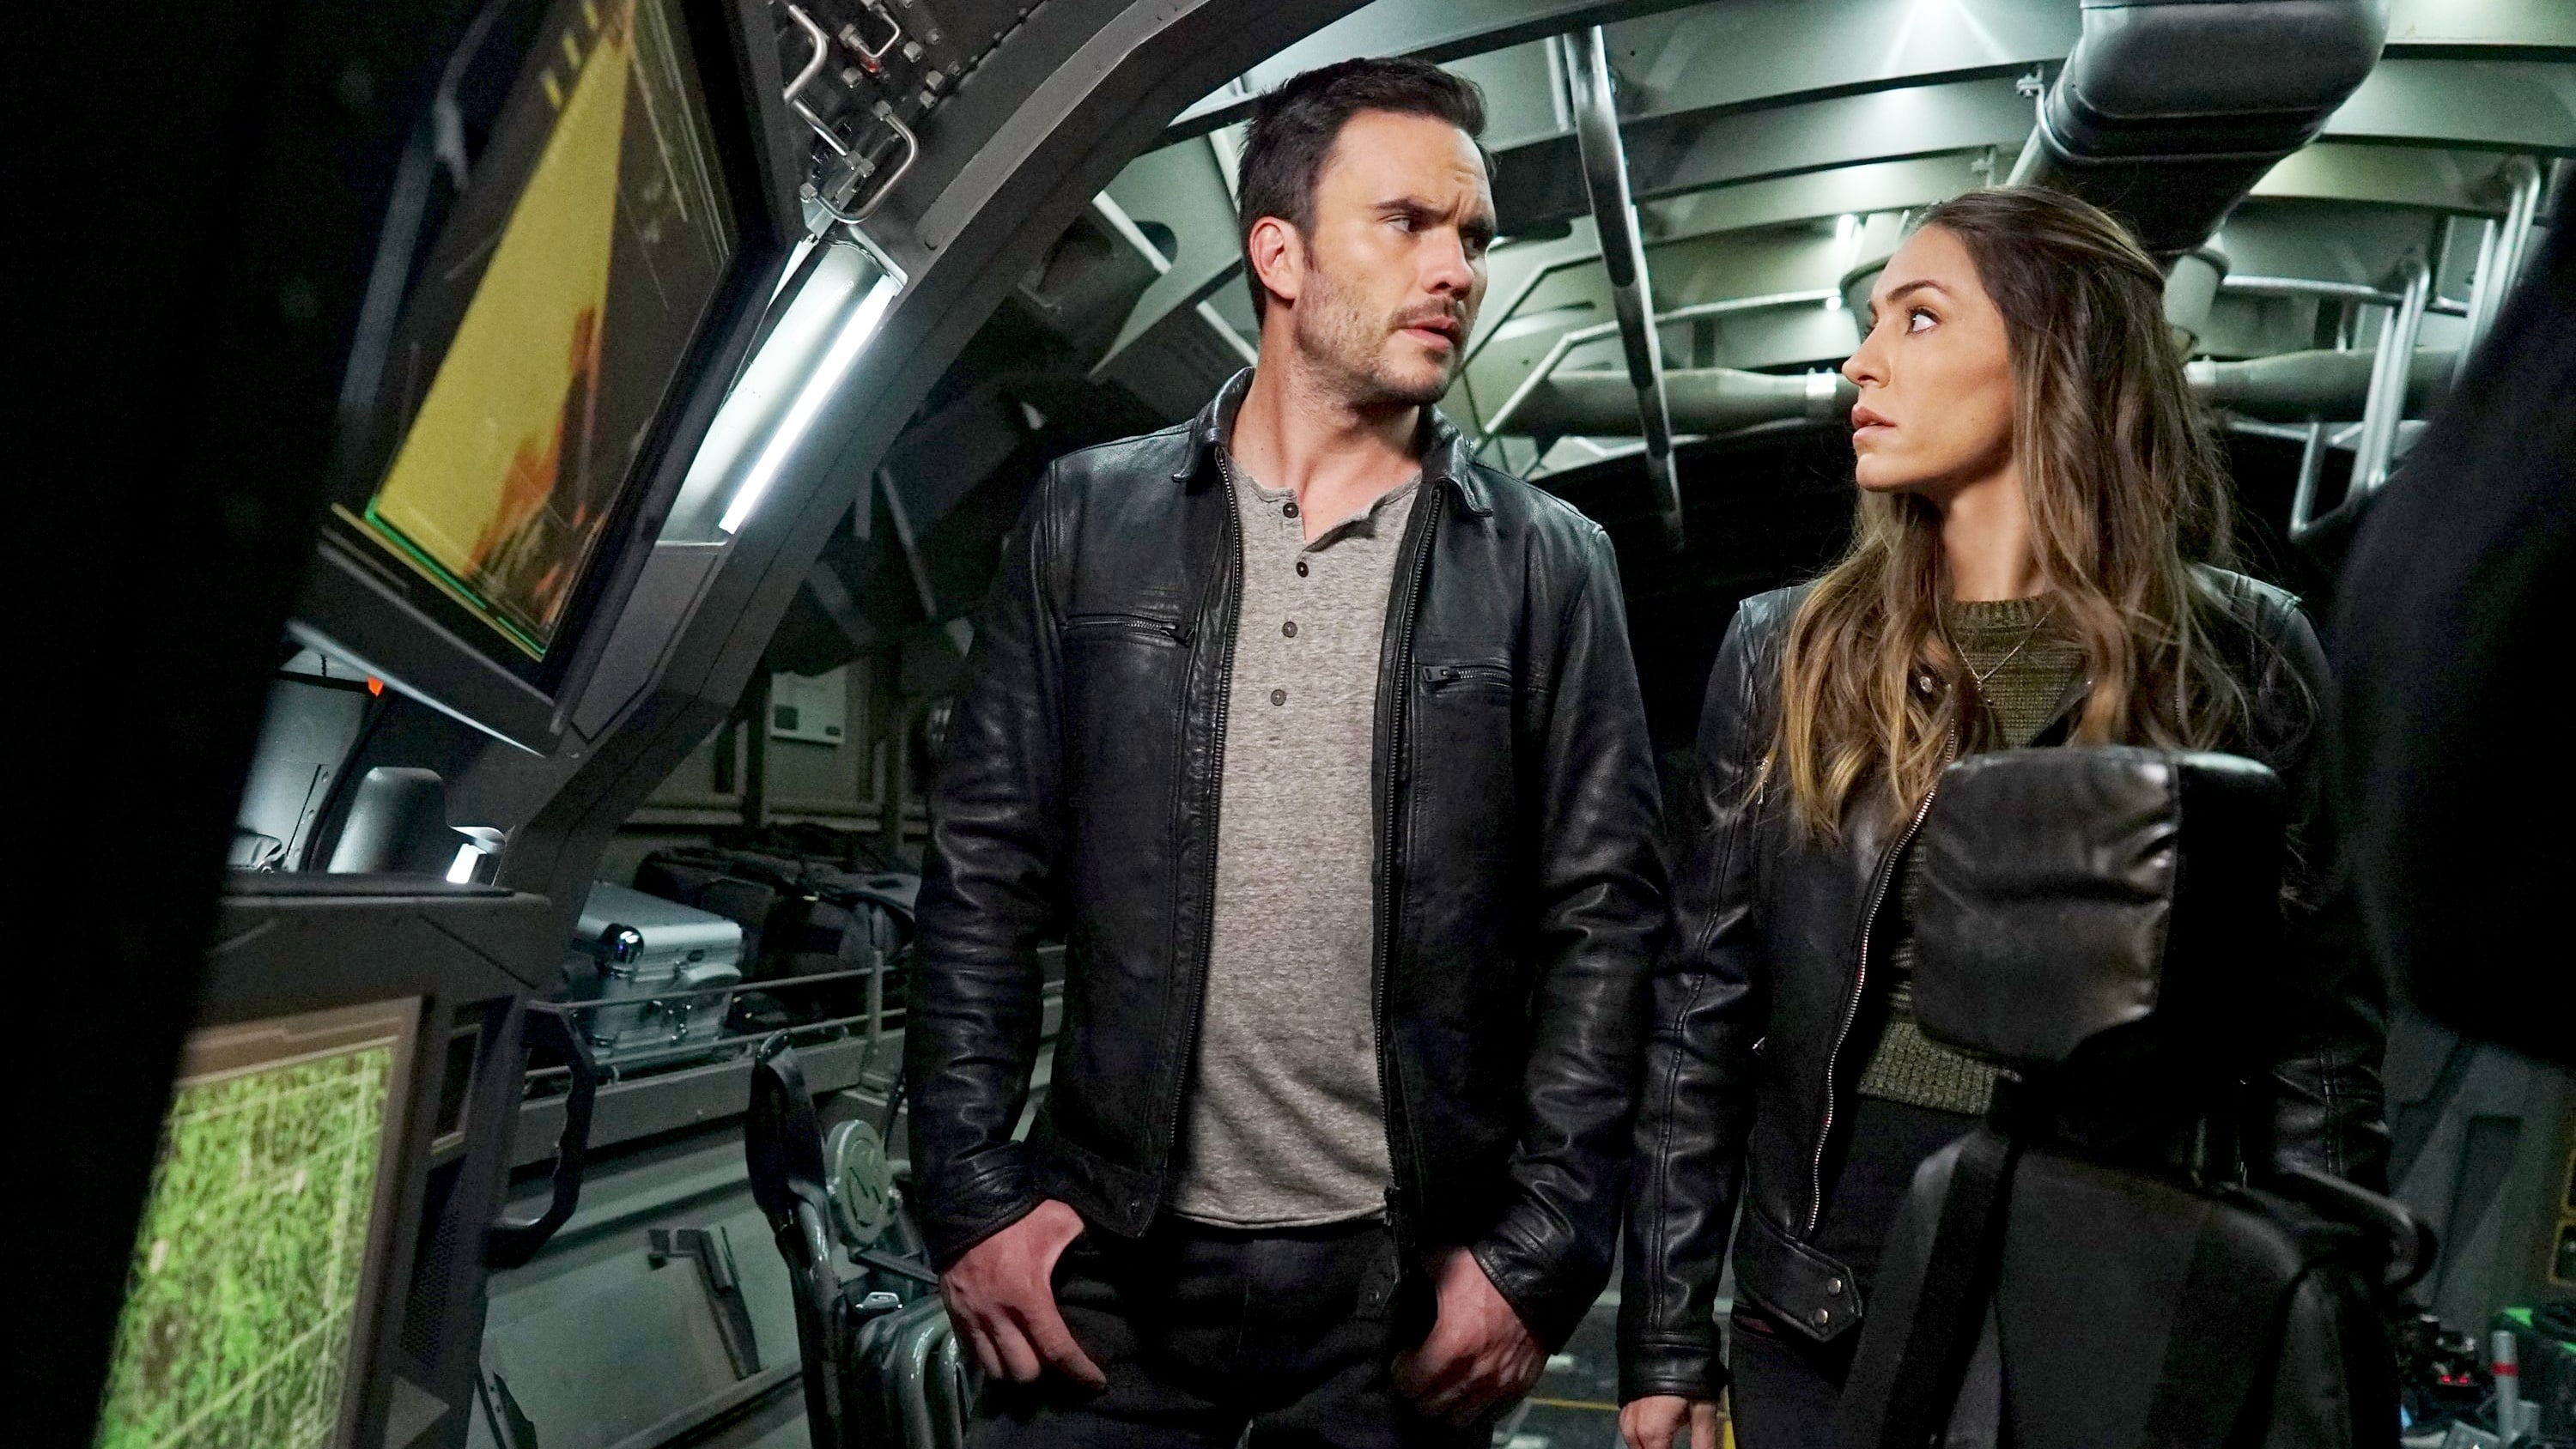 Marvel's Agents of S.H.I.E.L.D. - Season 3 Episode 17 : The Team